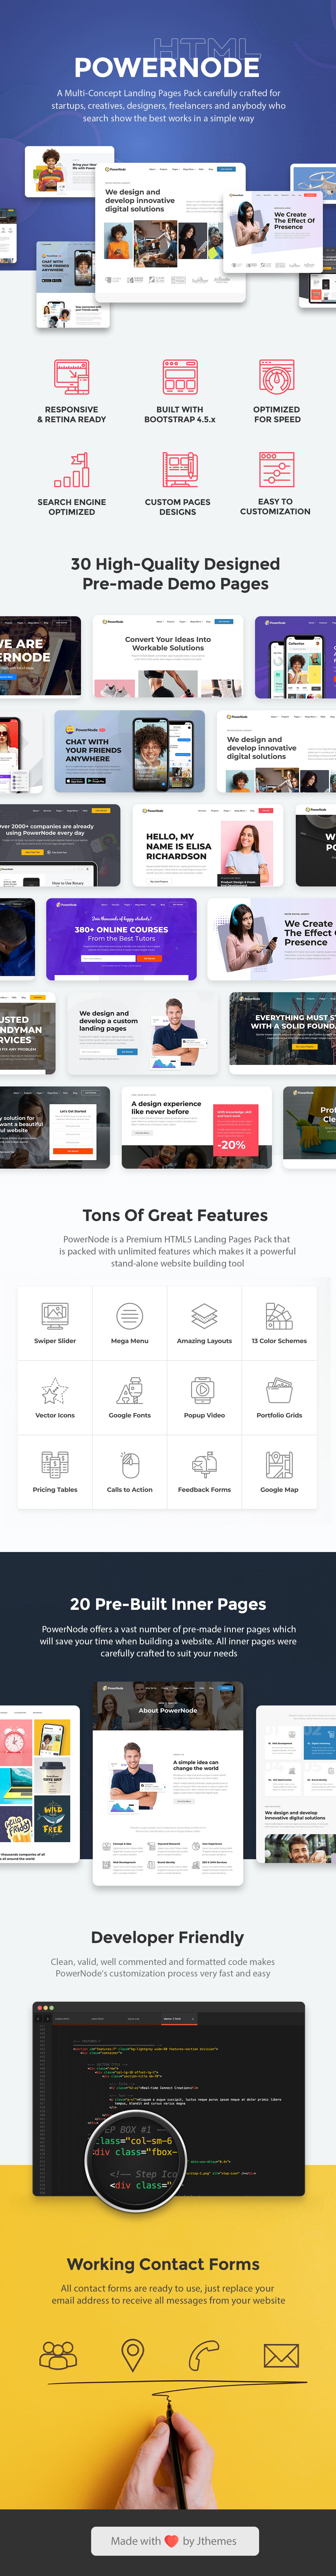 PowerNode - Multi-Concept Landing Pages HTML Template - 1